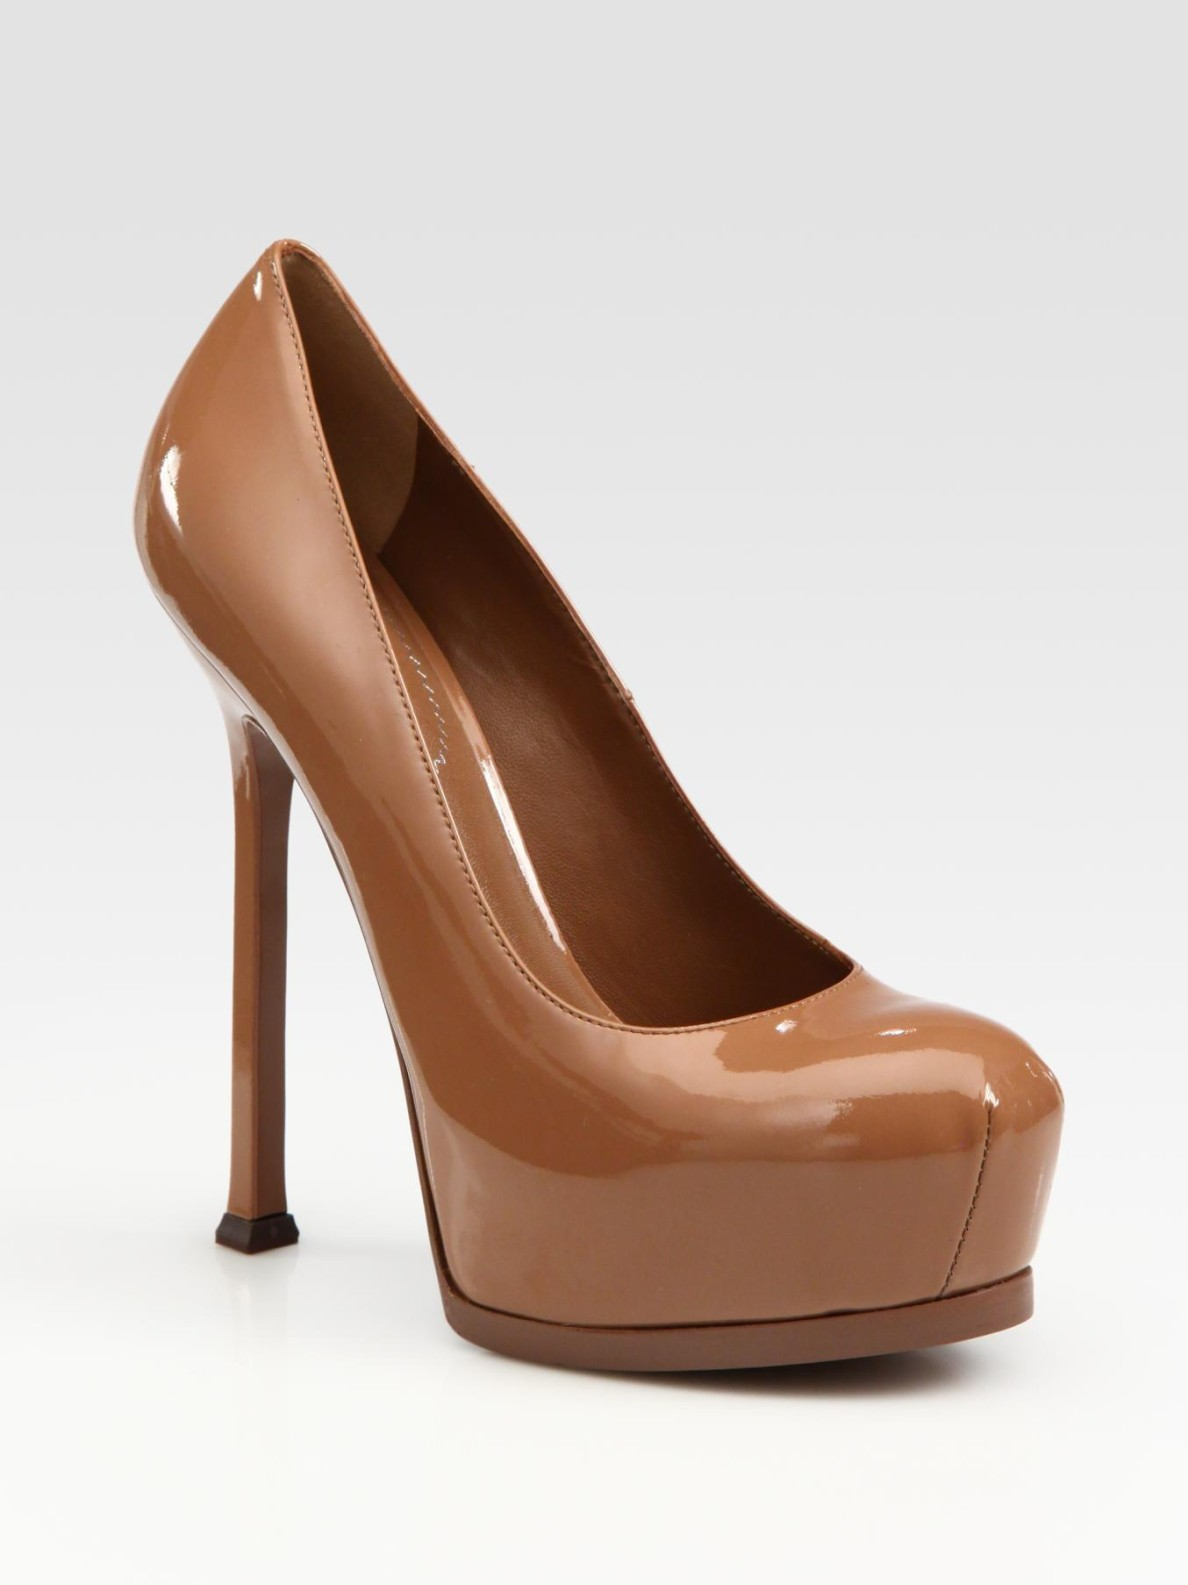 Lyst - Saint Laurent Ysl Trib Too Patent Leather Pumps in Brown